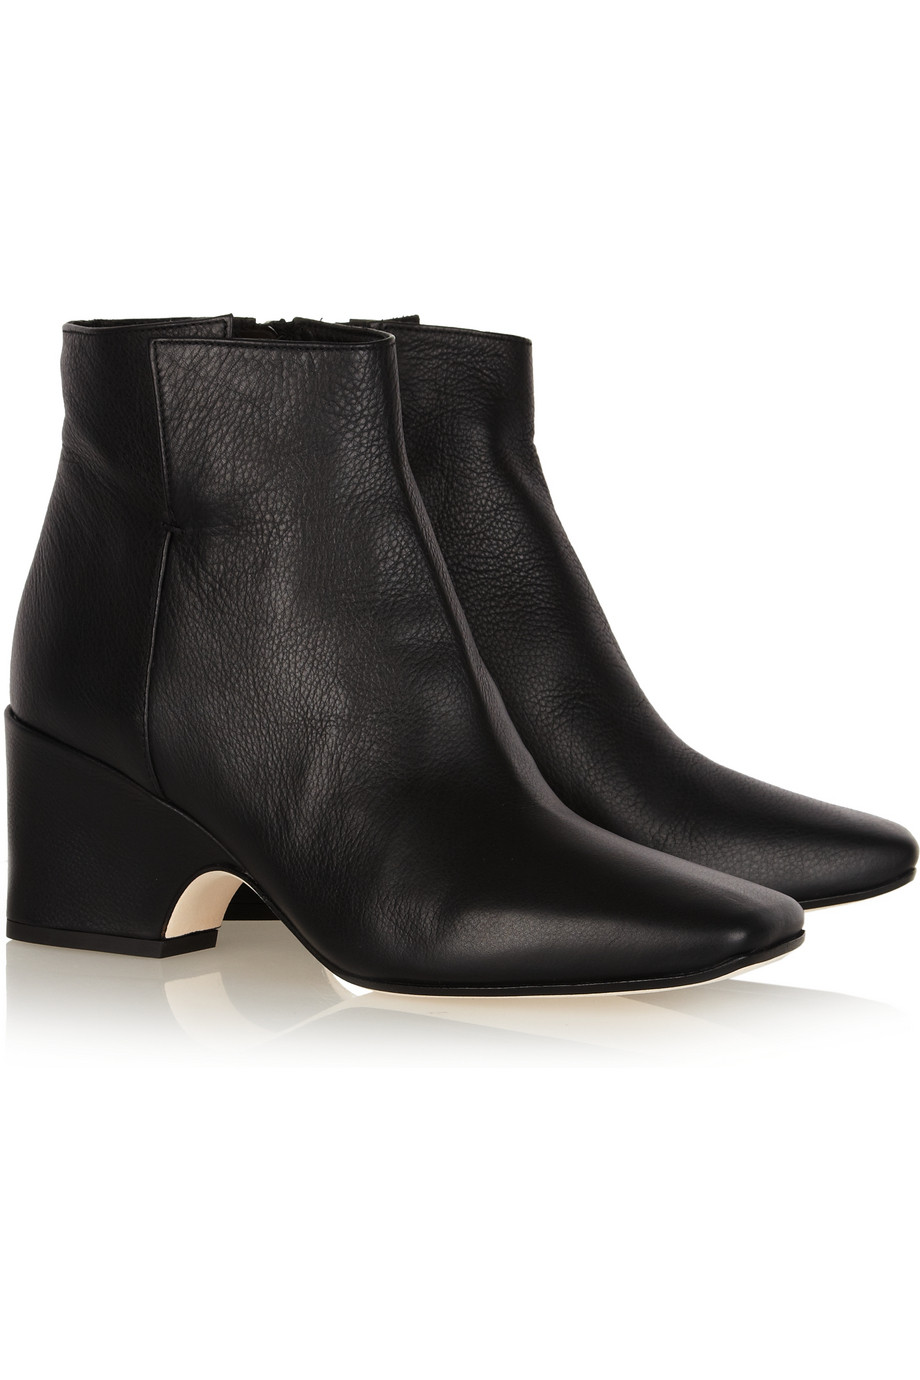 Calvin Klein Isabella Leather Ankle Boots in Black  Lyst